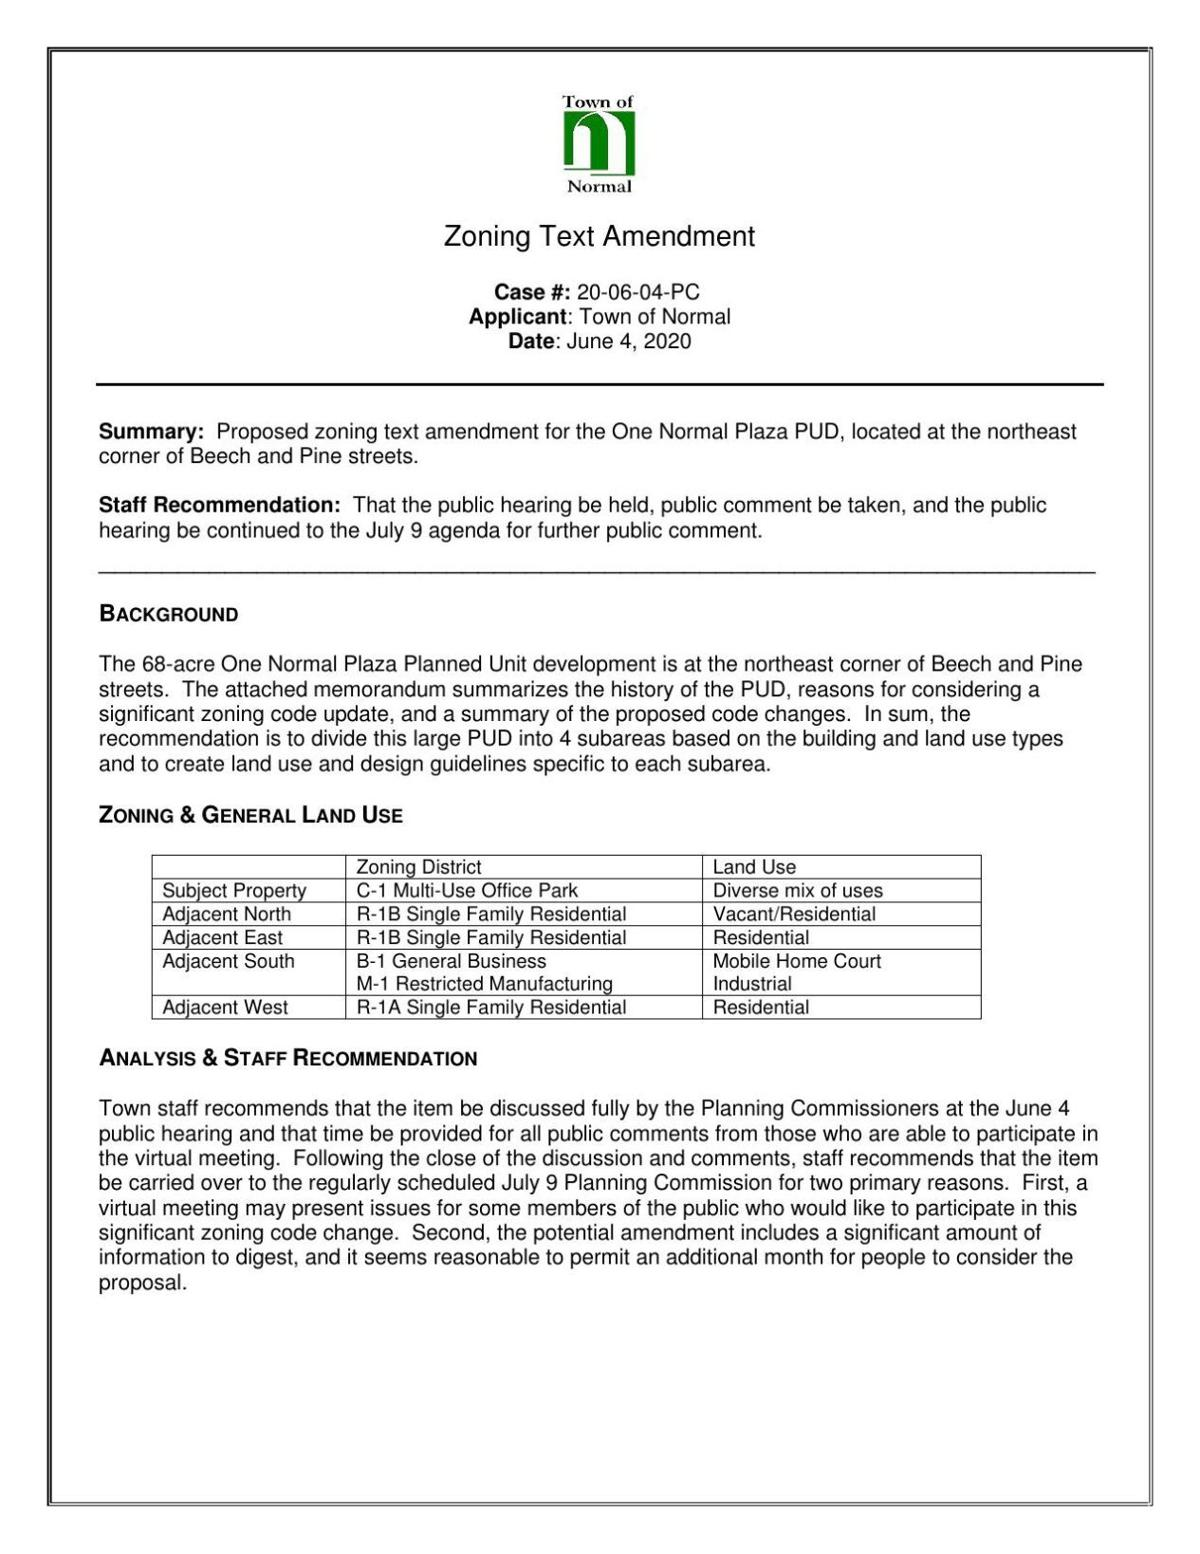 Proposed One Normal Plaza Zoning Text Amendment